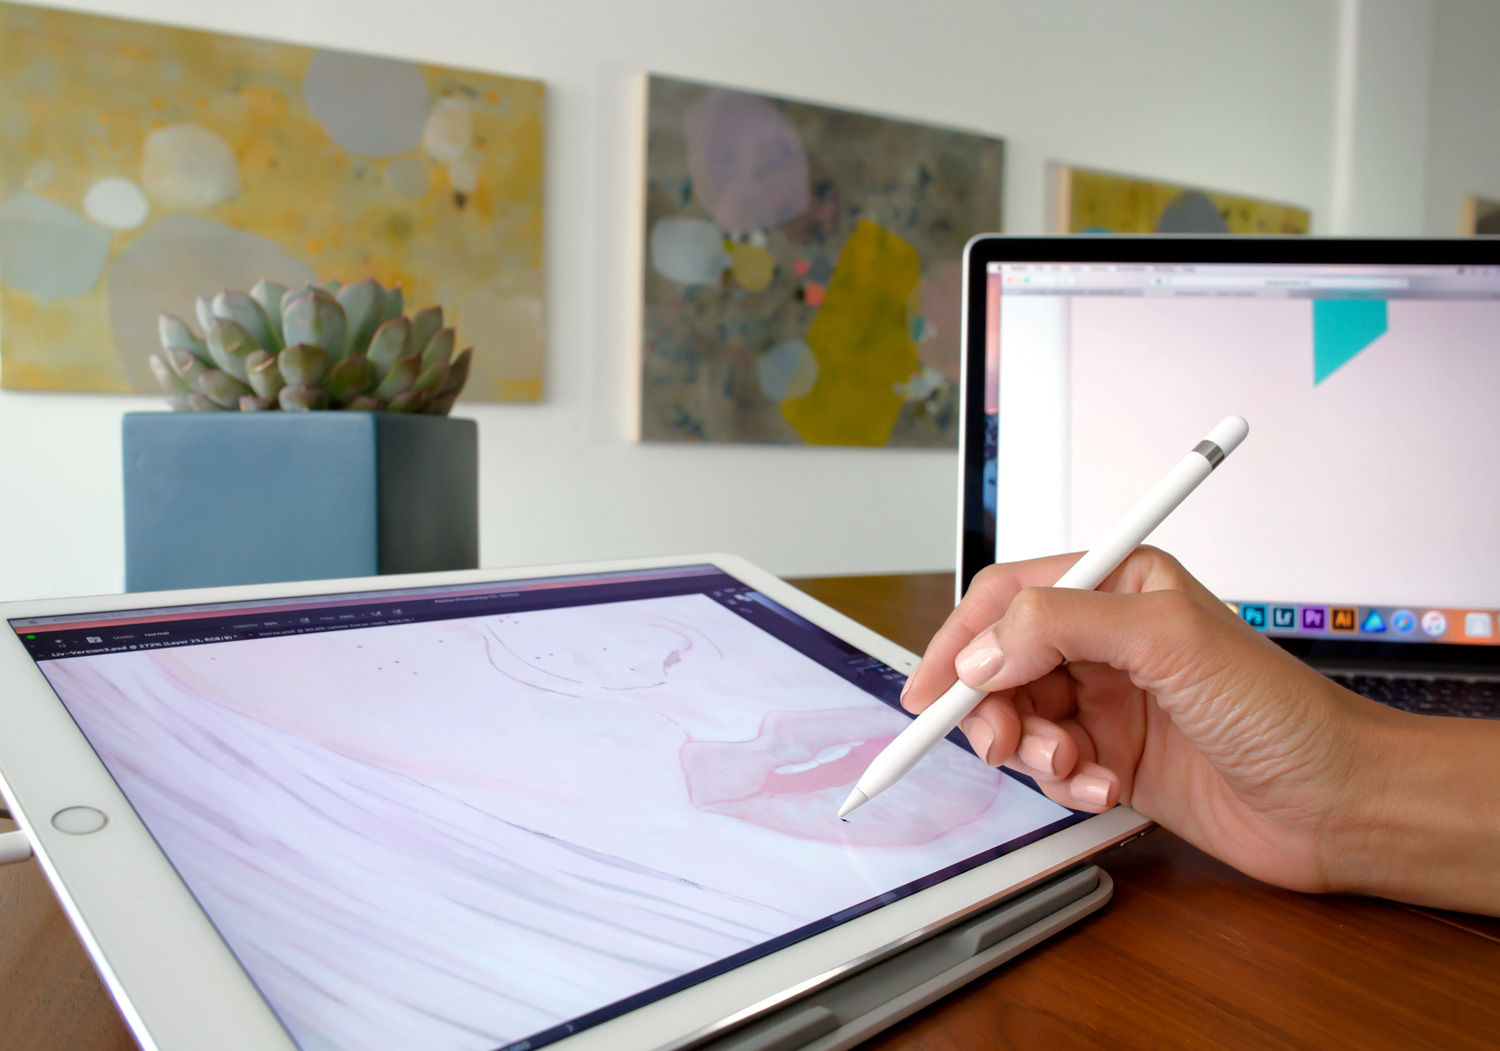 This amazing app turns your iPad Pro into a Cintiq - News